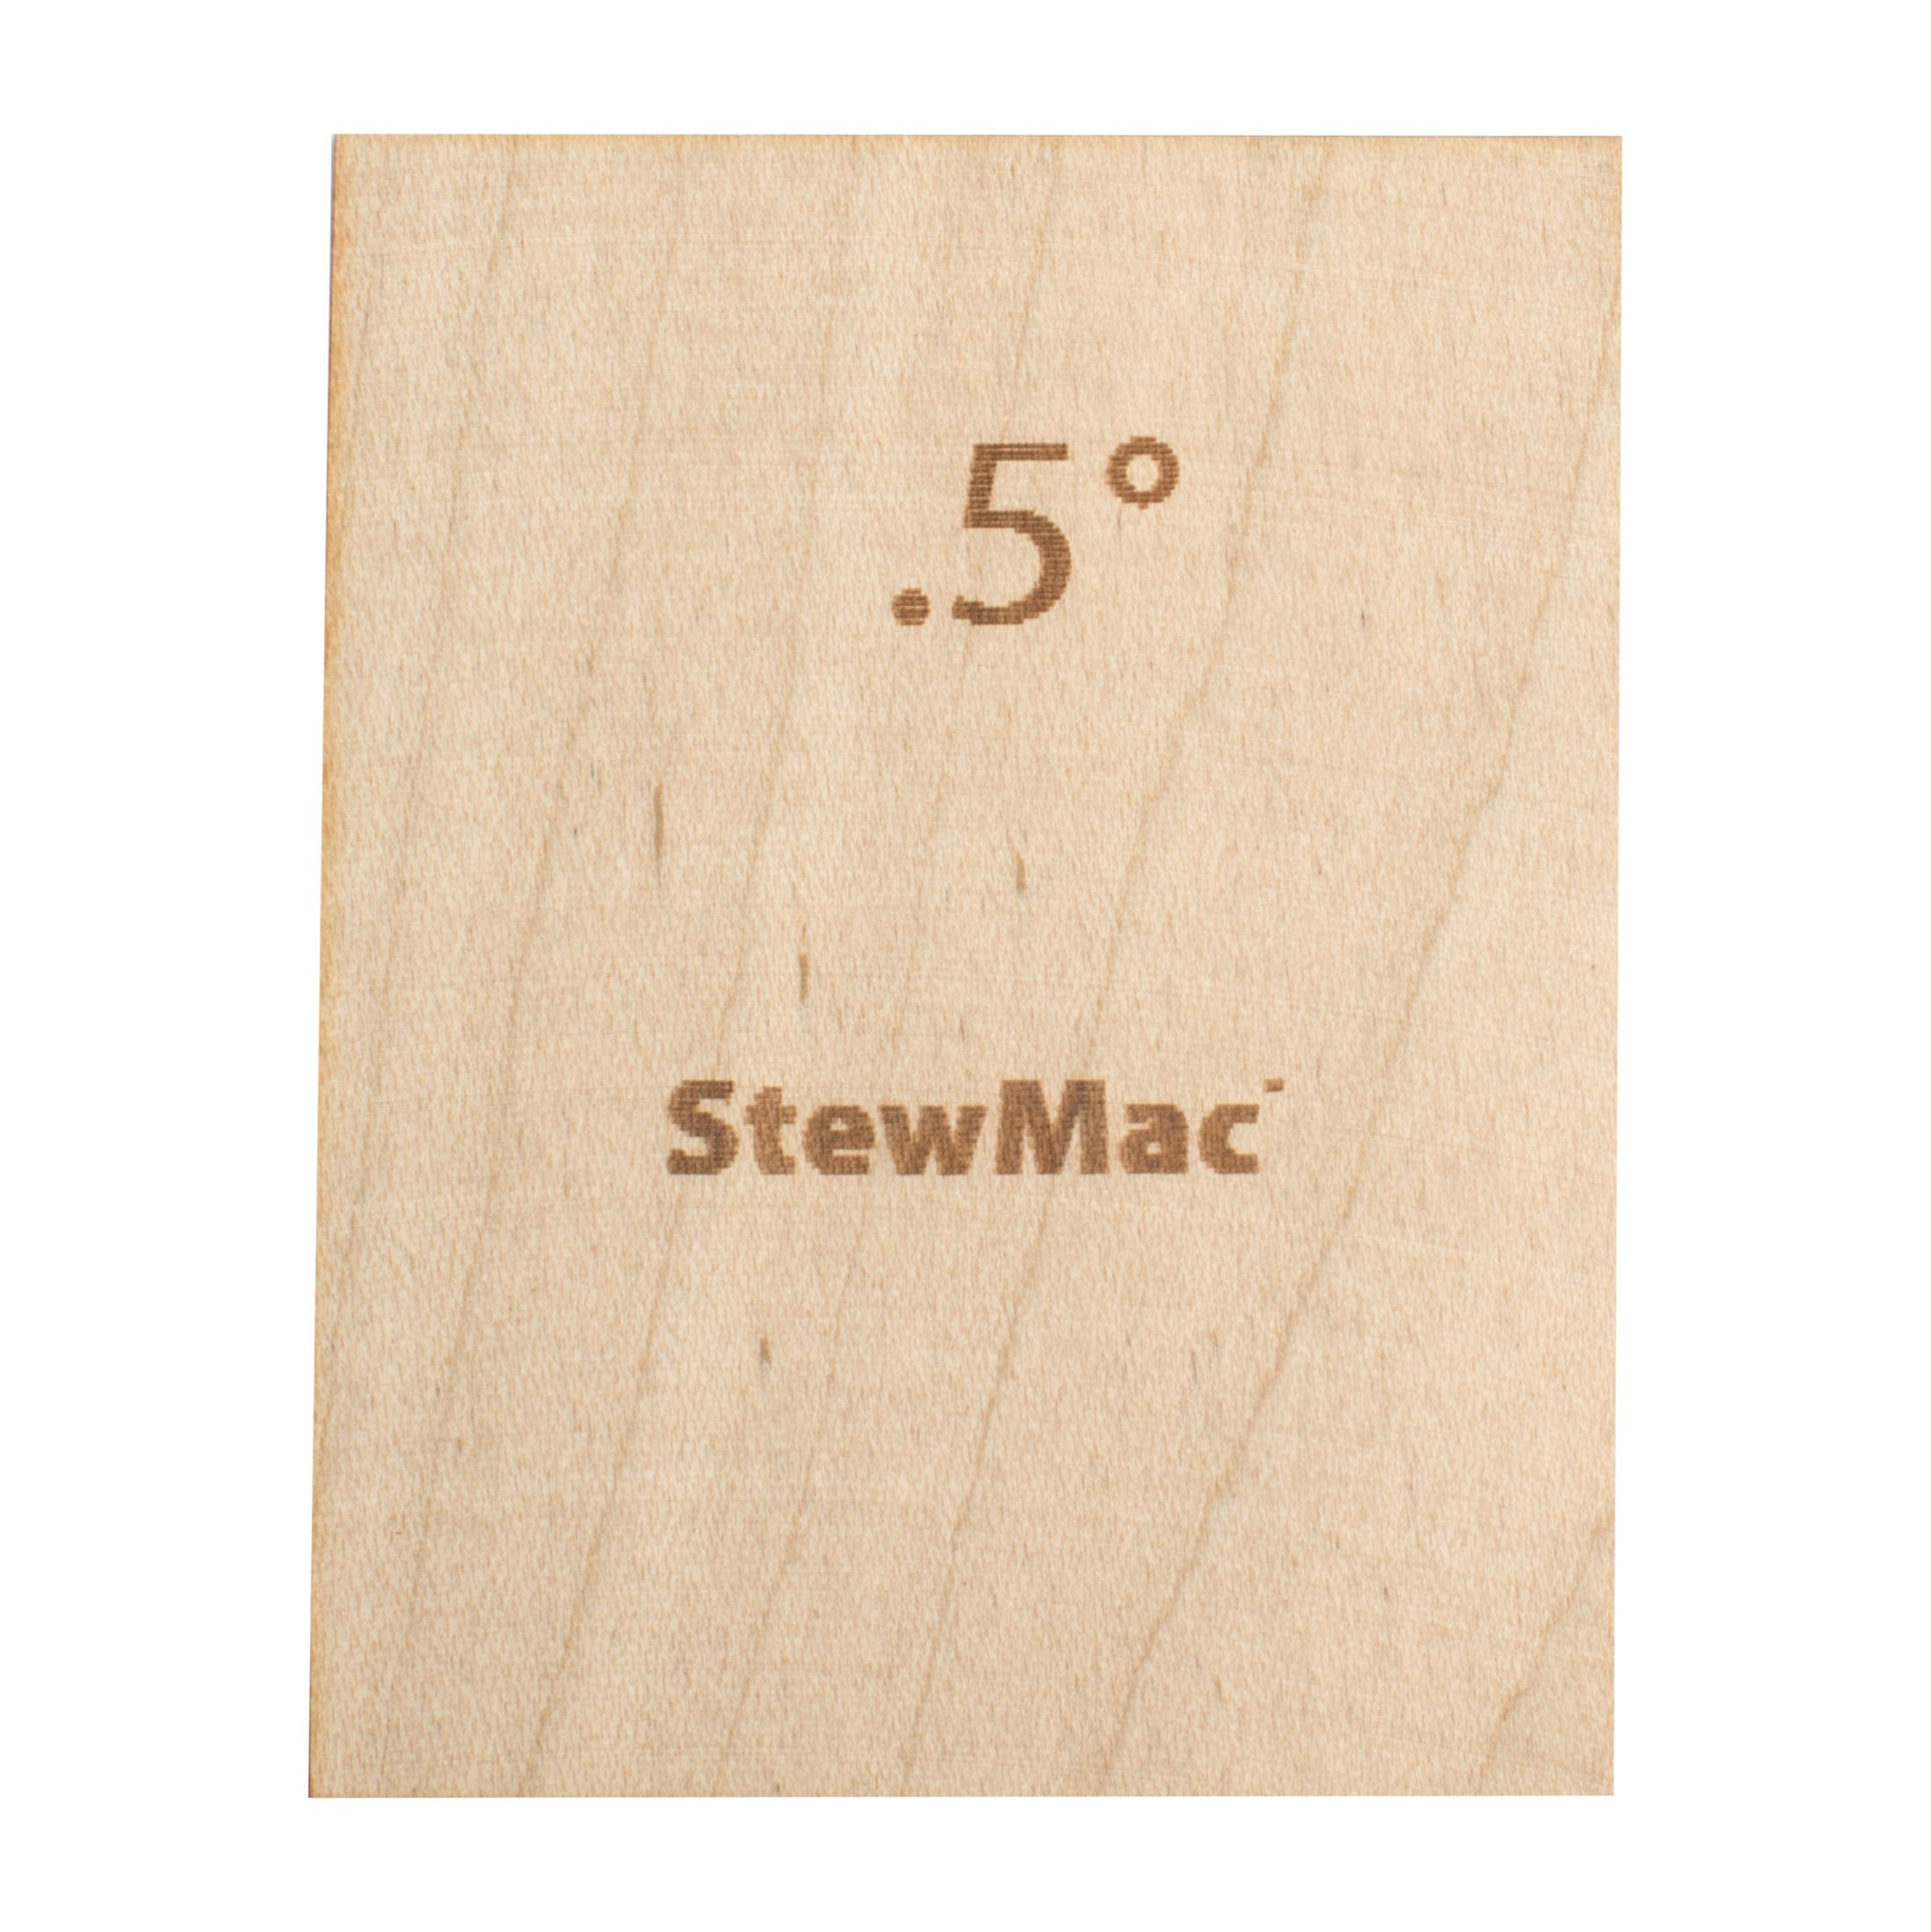 StewMac Neck Shims for Guitar, Blank - 6 Pack of 0.50 Degree Shims by StewMac (Image #1)